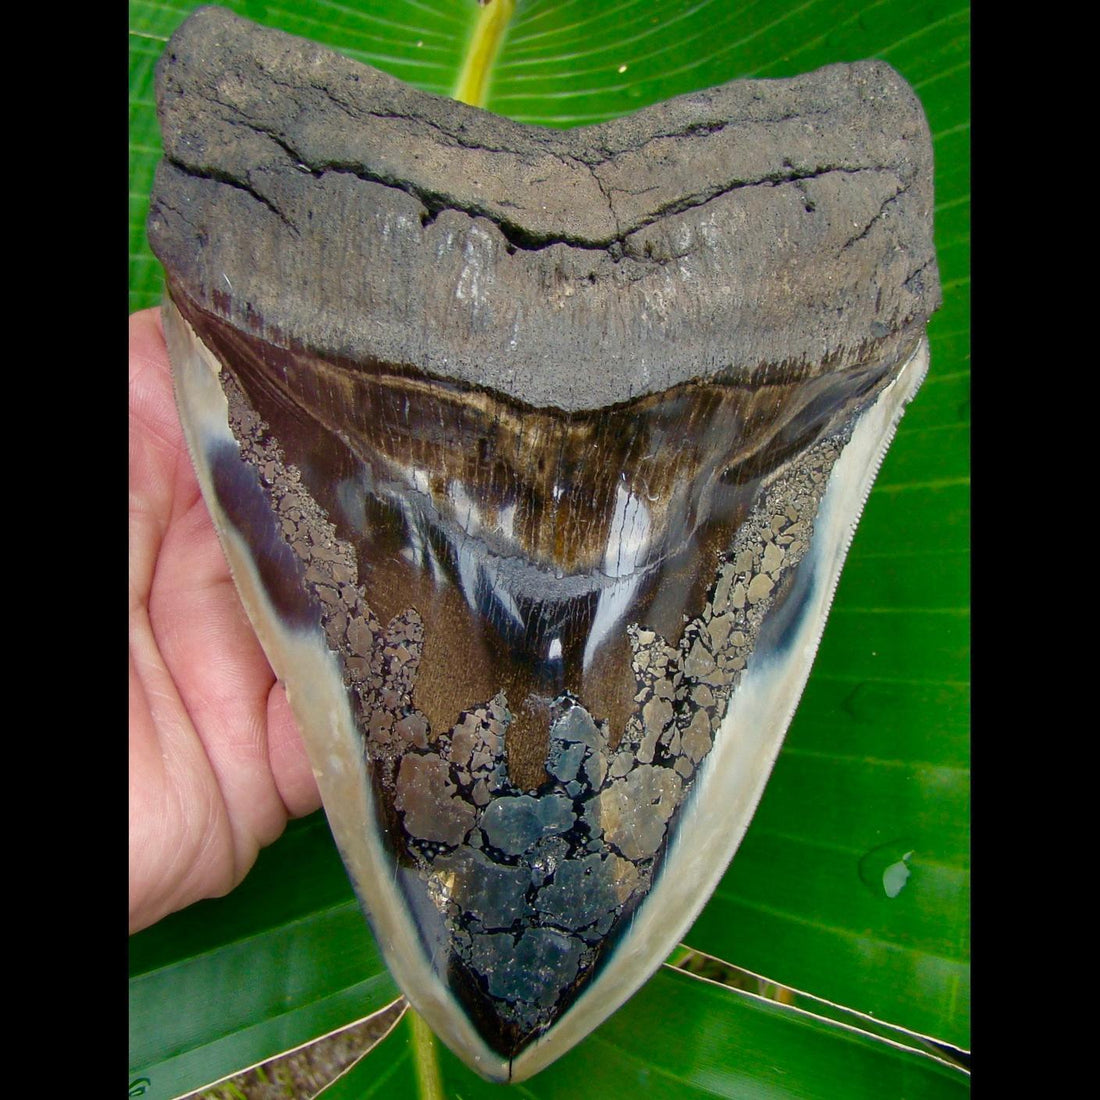 Megalodon Tooth MONSTER 6 & 3/8 in. * GOLD PYRITE * South Carolina Megalodon Shark Tooth